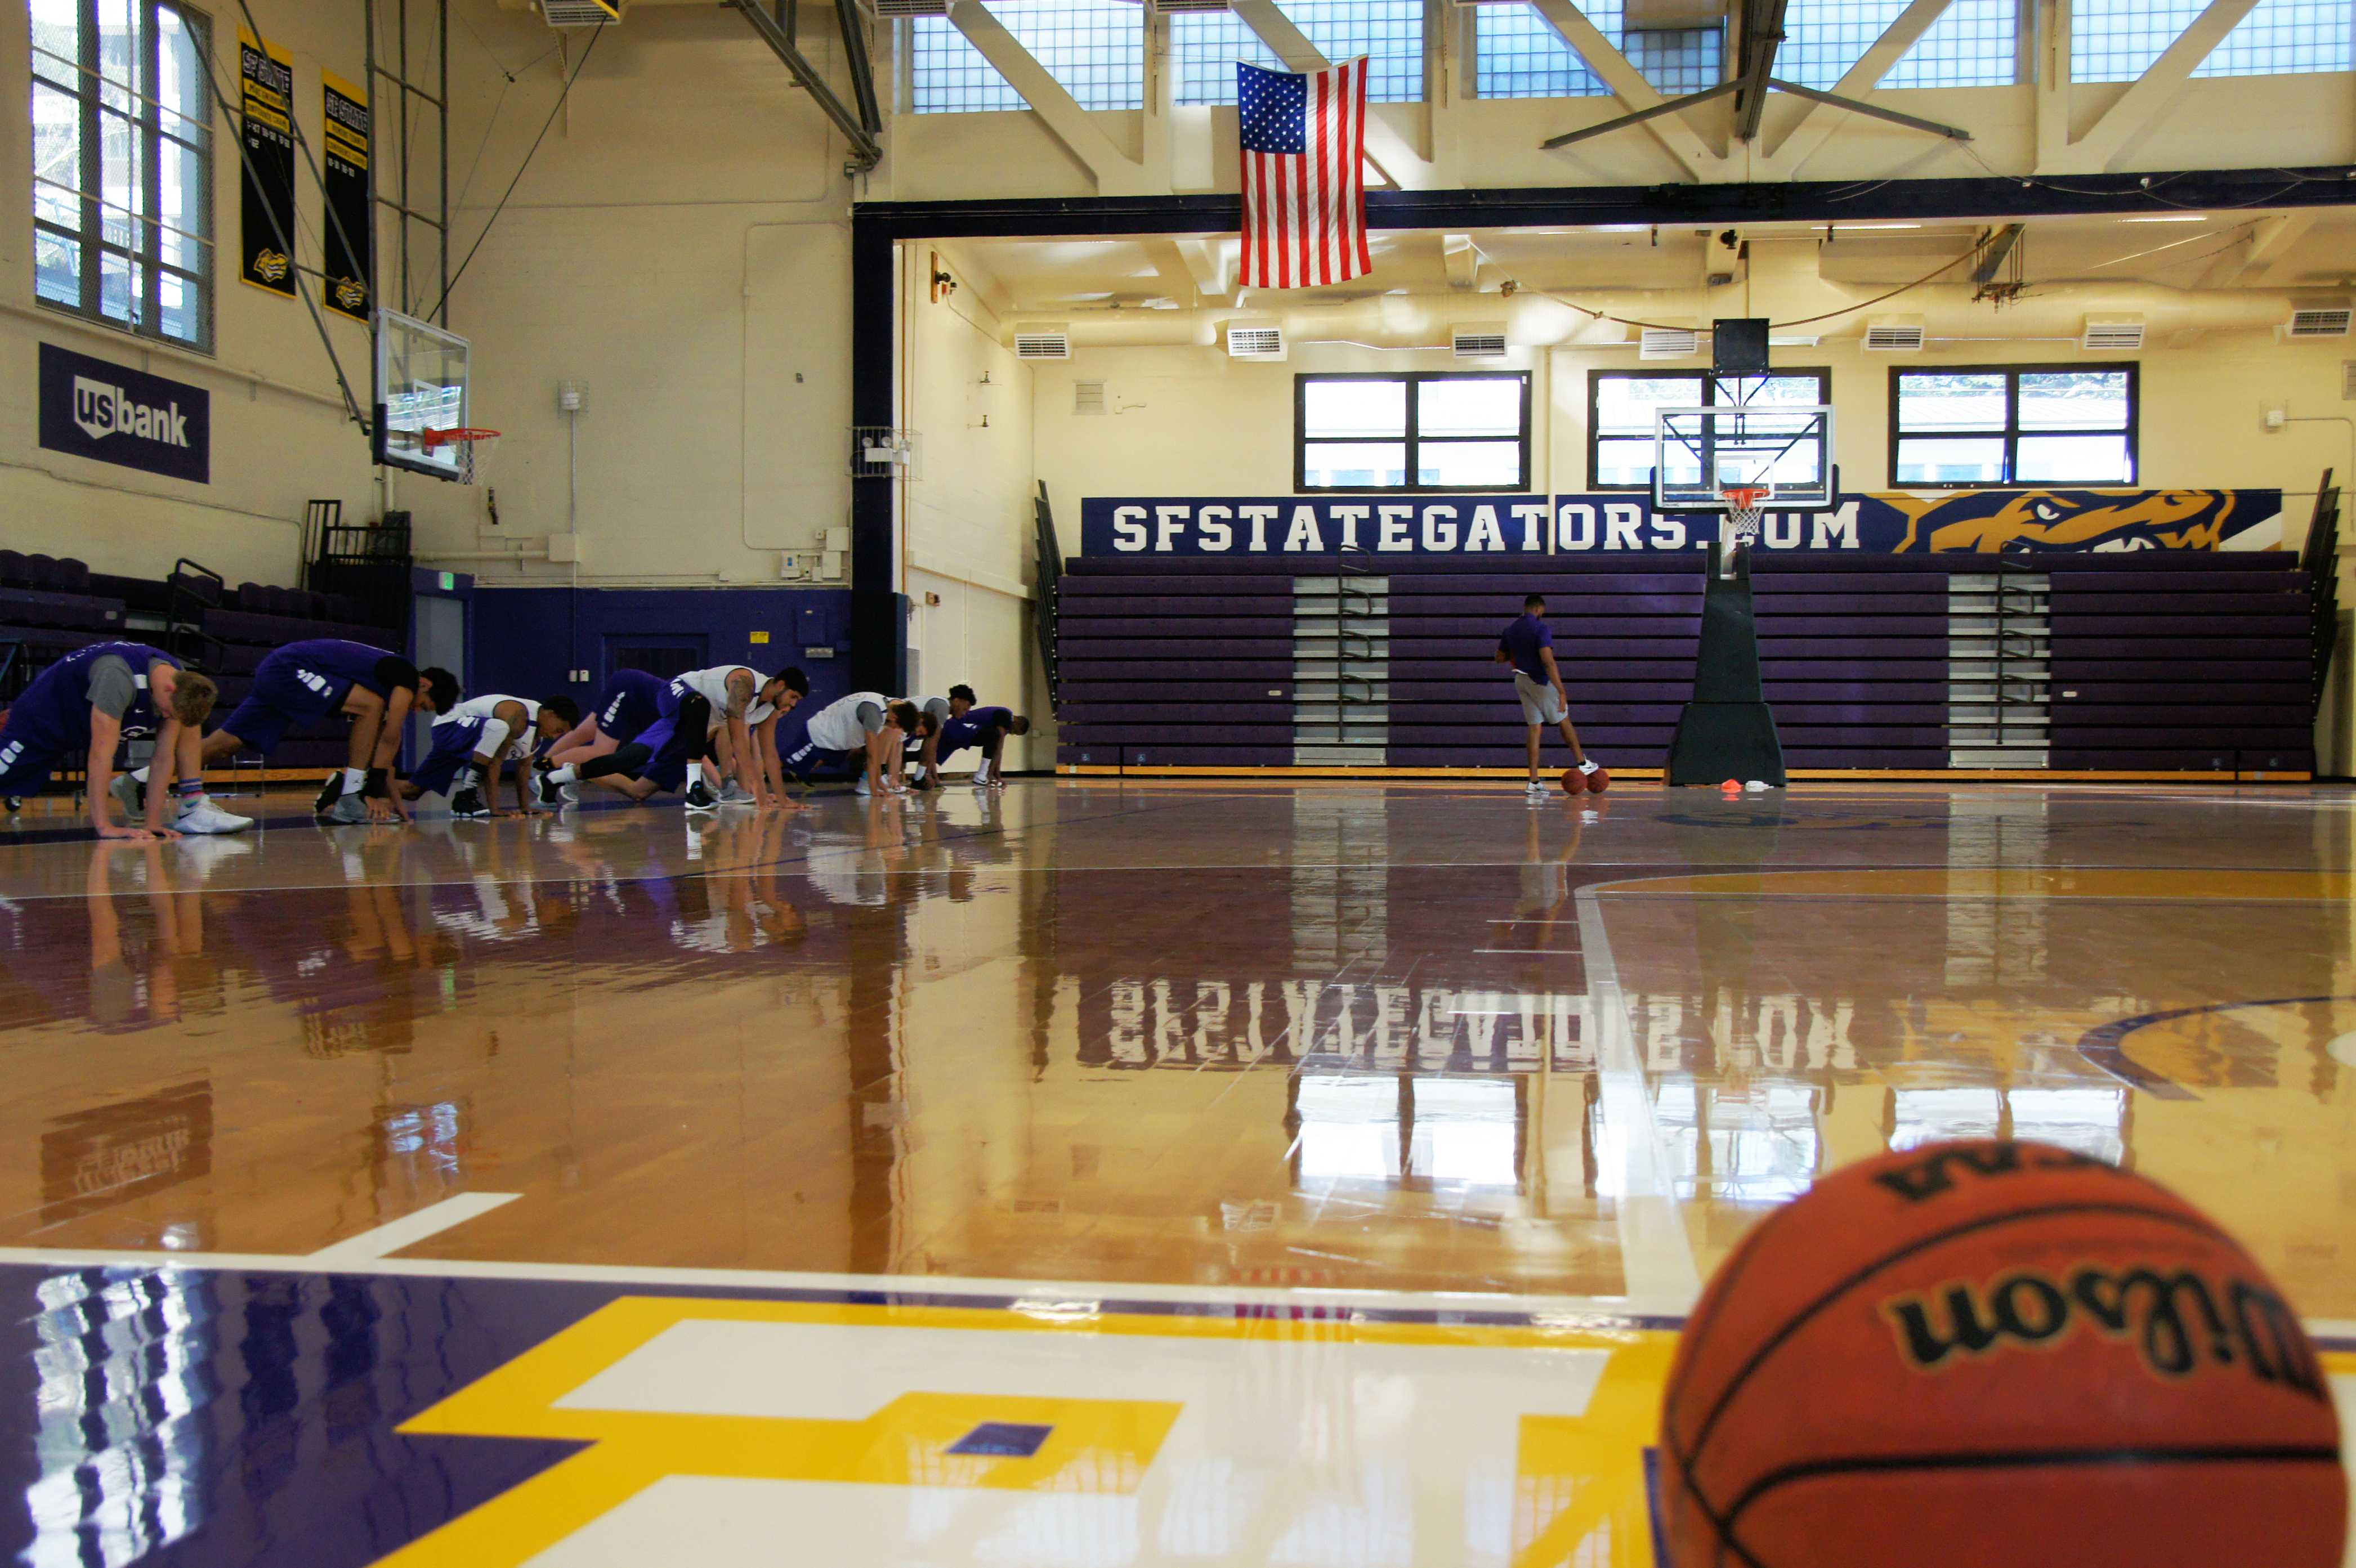 The men's basketball team practices in the gym at SF State on Wednesday, Nov. 1, 2017. (Aya Yoshida/Golden Gate Xpress)